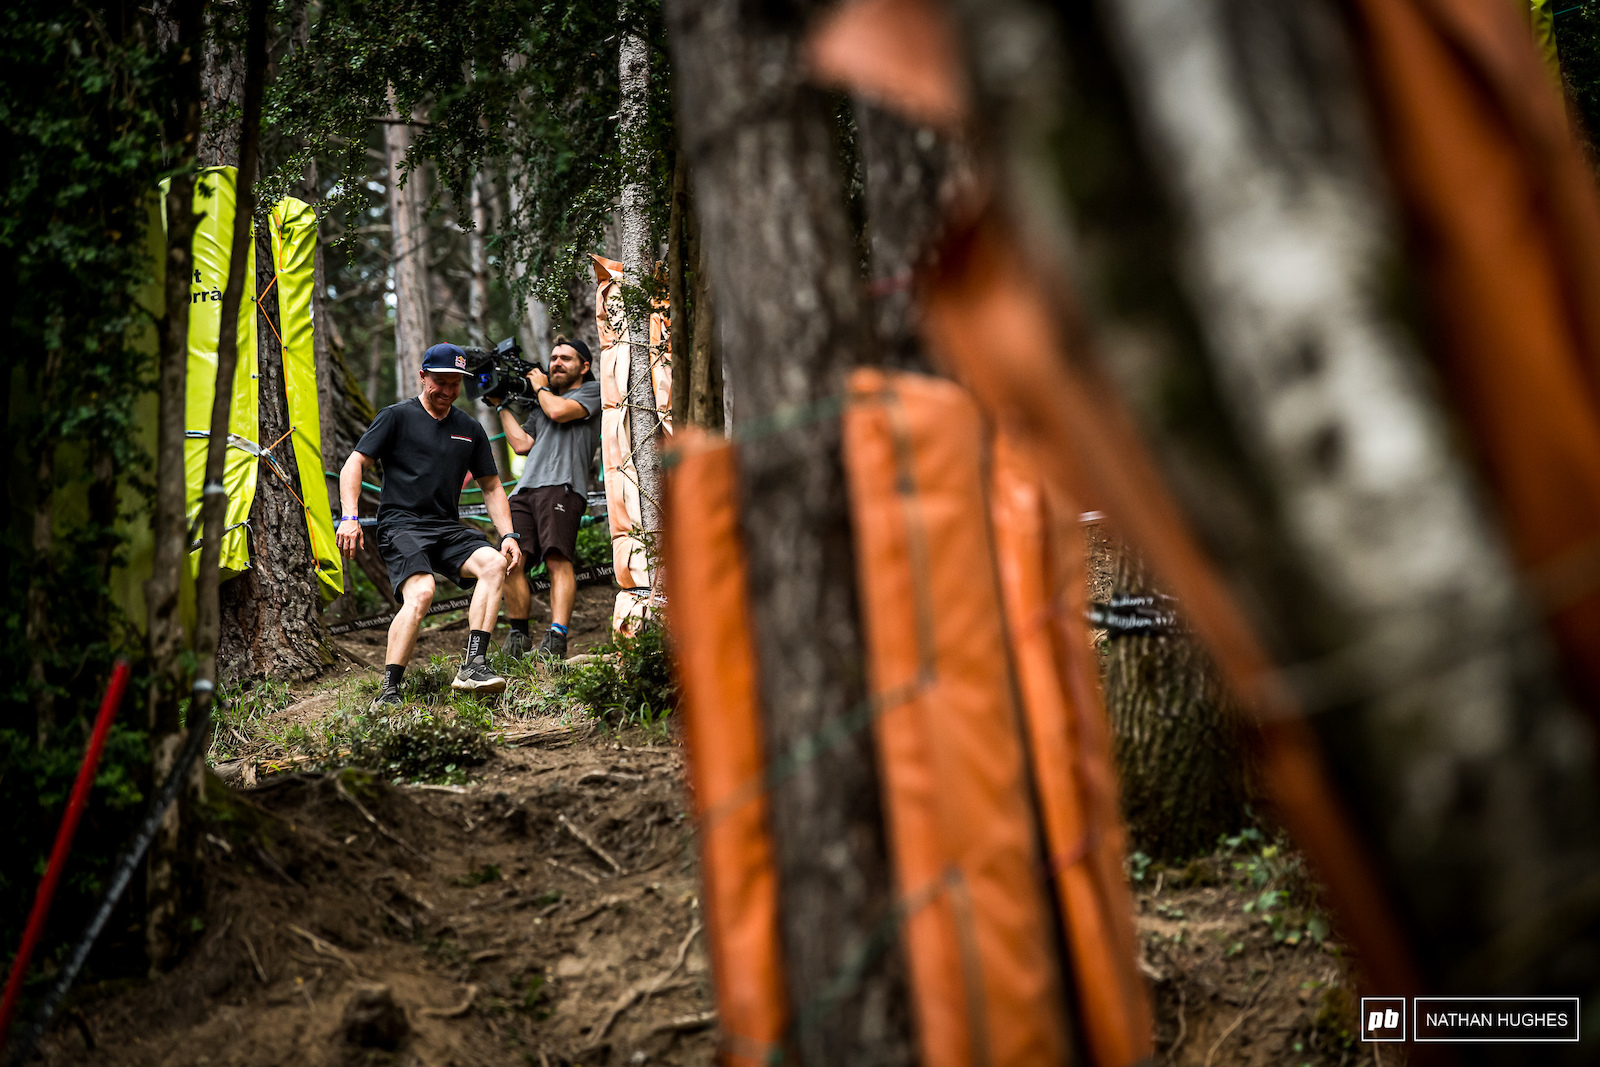 Gwin stomps down the new yet to be rutted steep section.